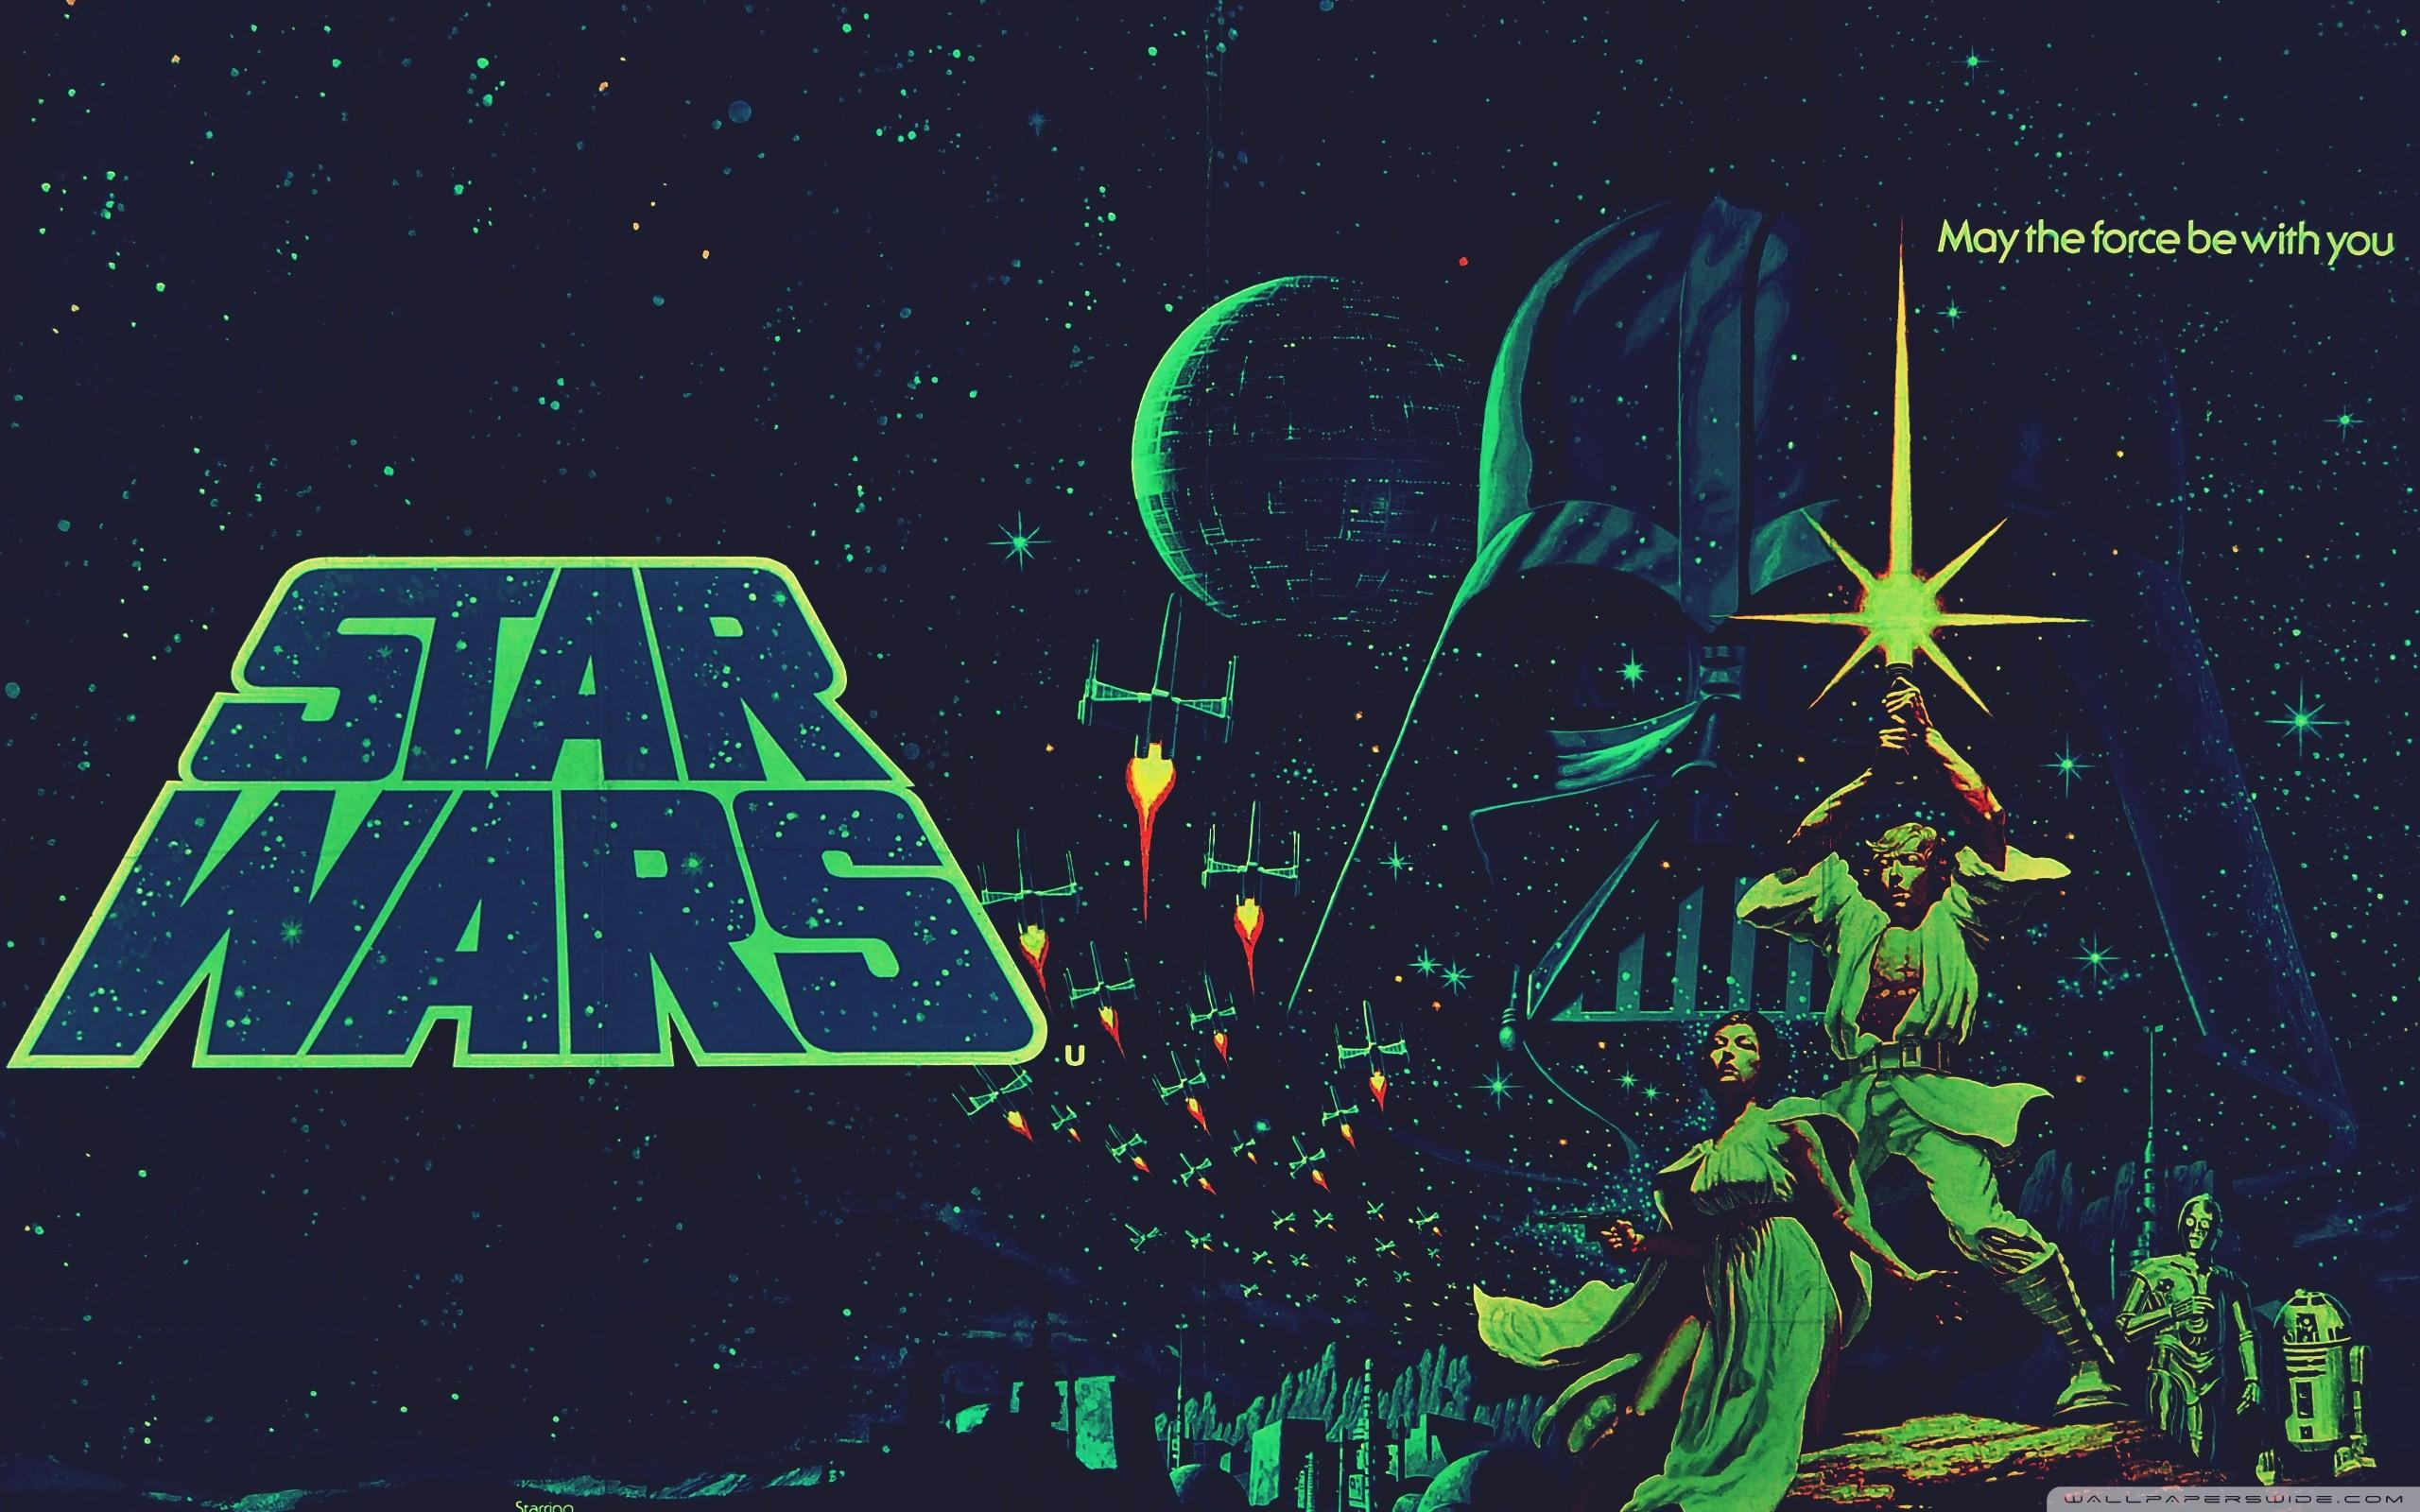 Vintage Star Wars Wallpapers Wallpaper Cave